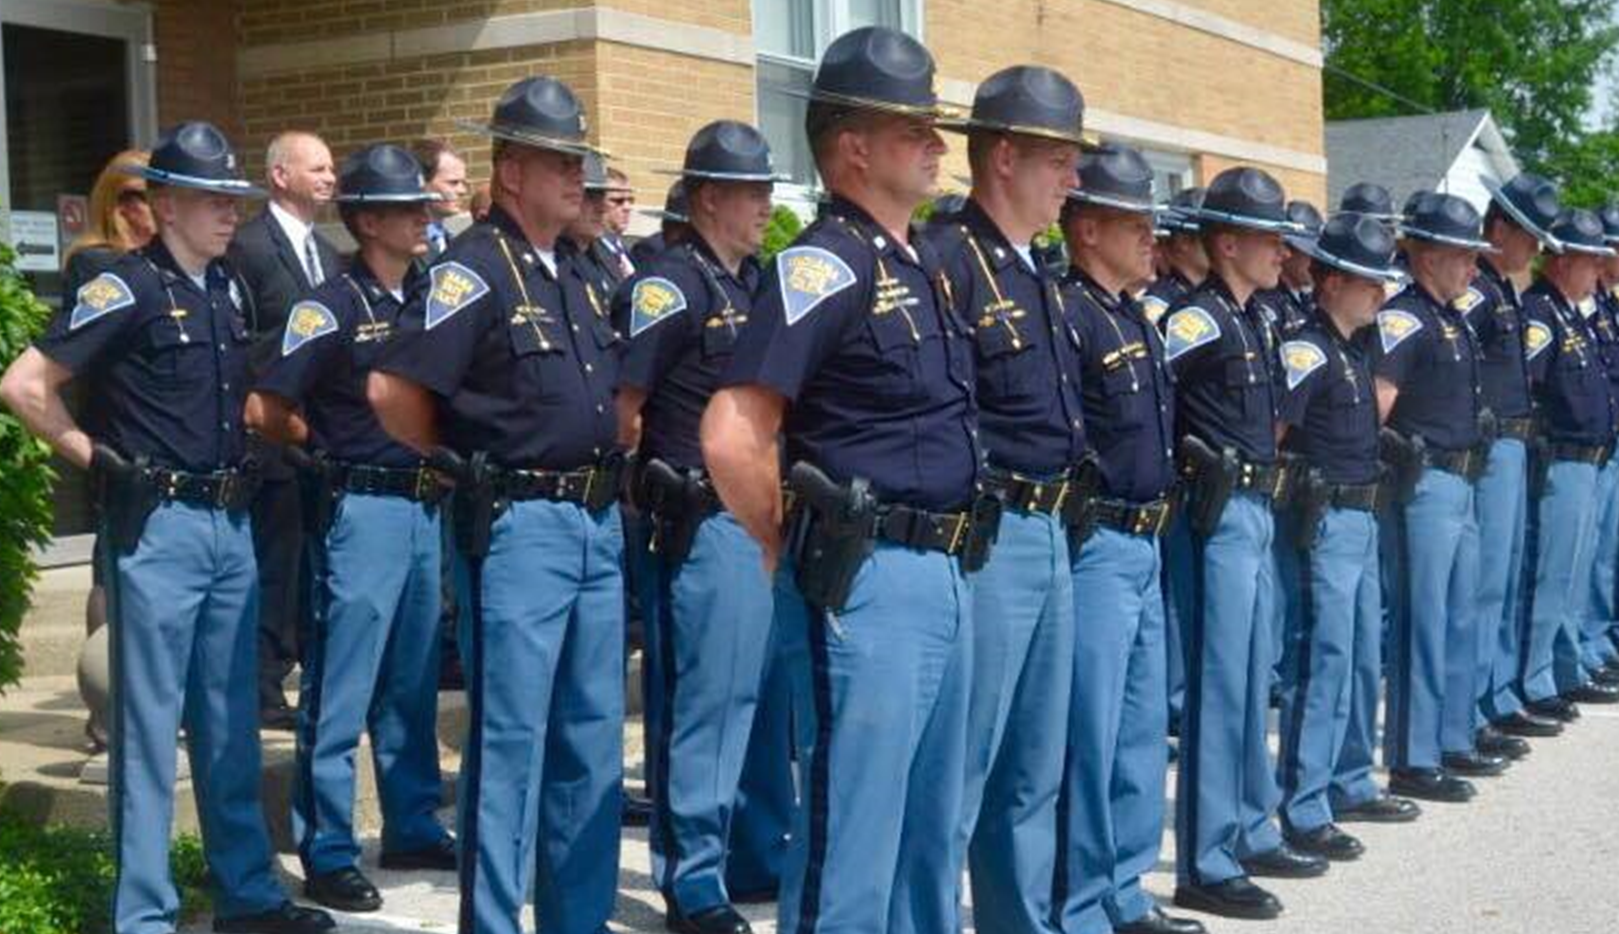 ISP Jasper Post to Host Annual Memorial Service to Honor Fallen State Troopers